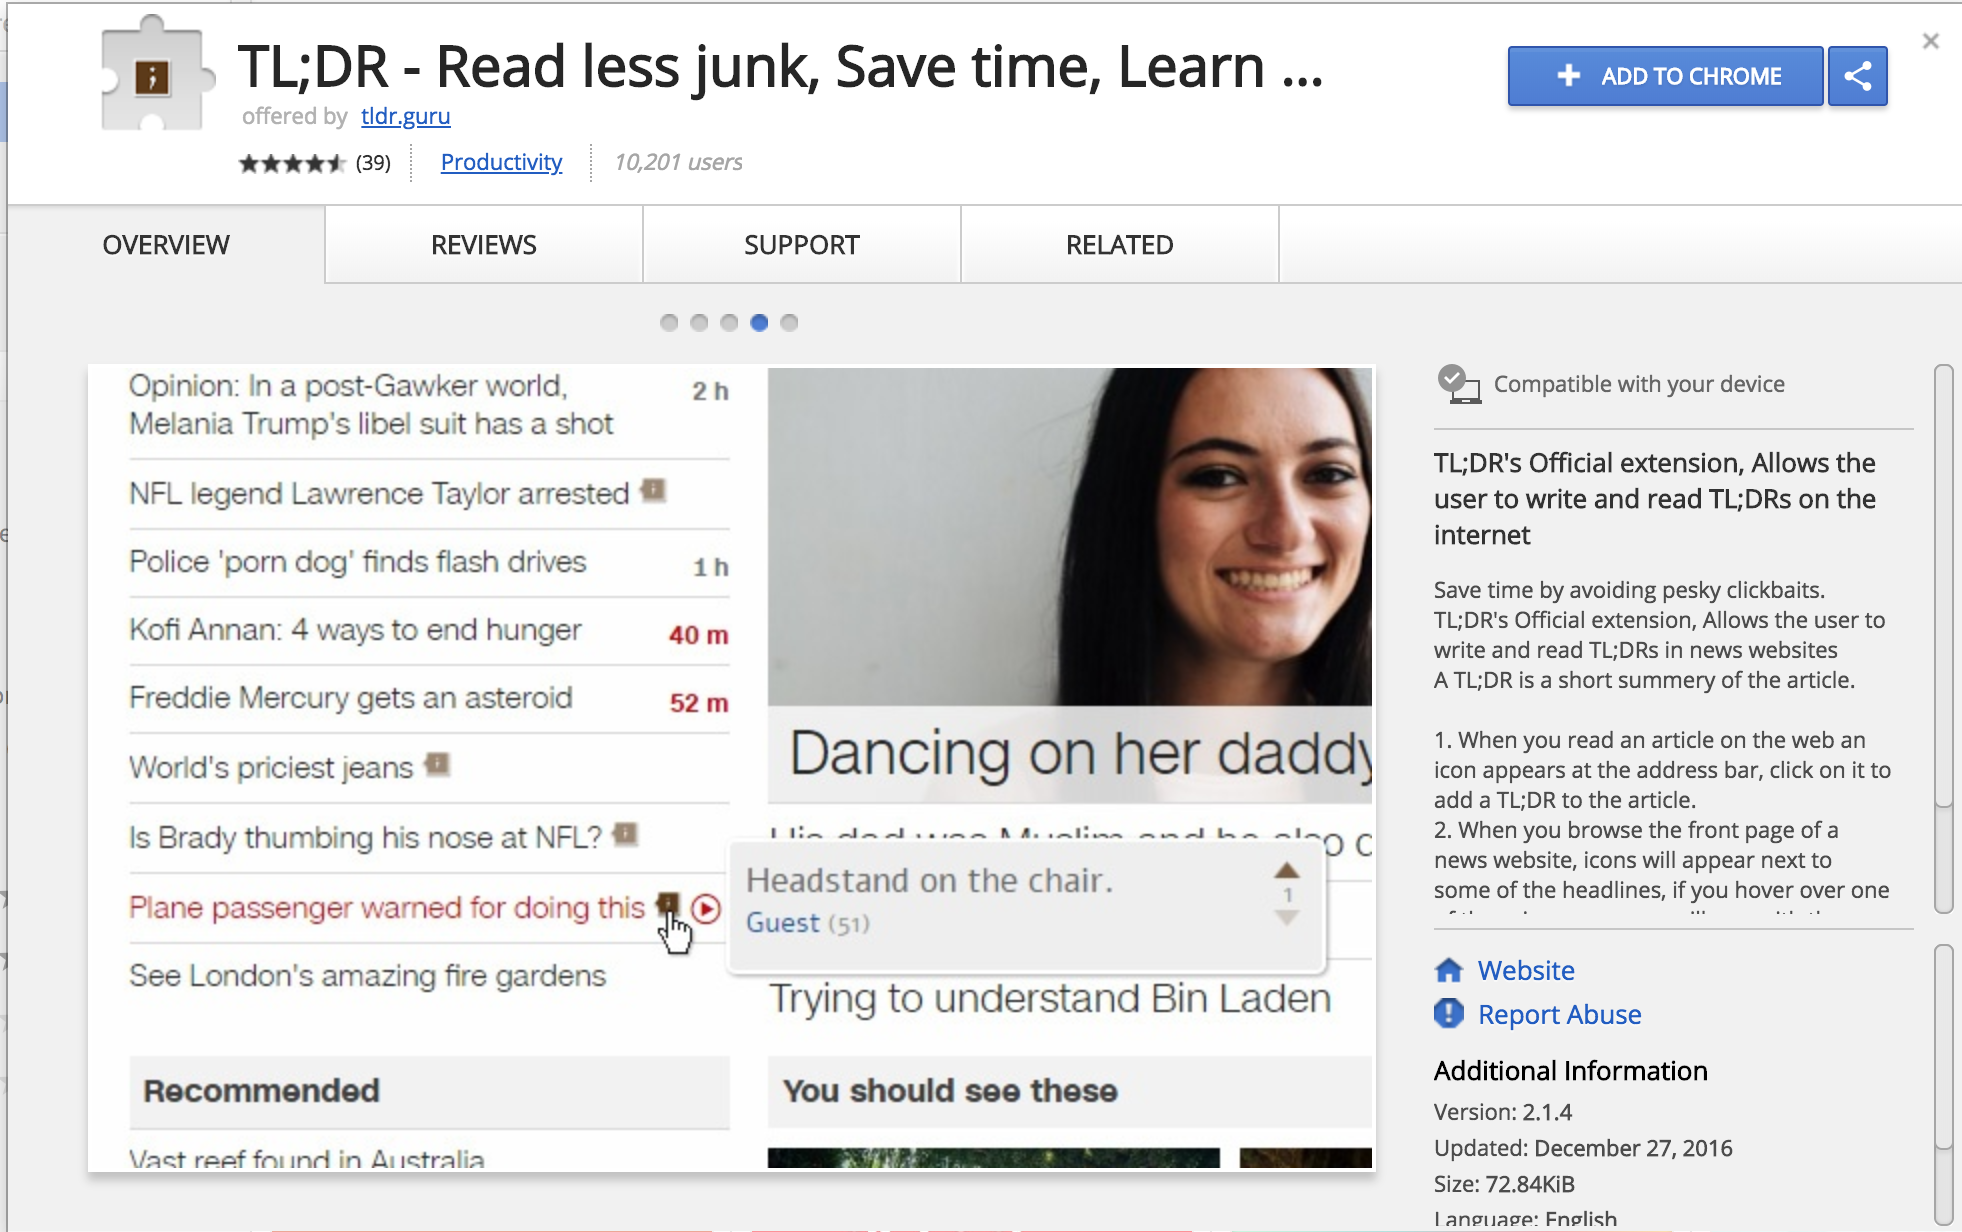 tl;dr - Sometimes, it can help students to have a summary of an article before they read it. If so, this Chrome extension is perfect for providing a quick summary for articles. The extension is named tl'dr, which is internet jargon for